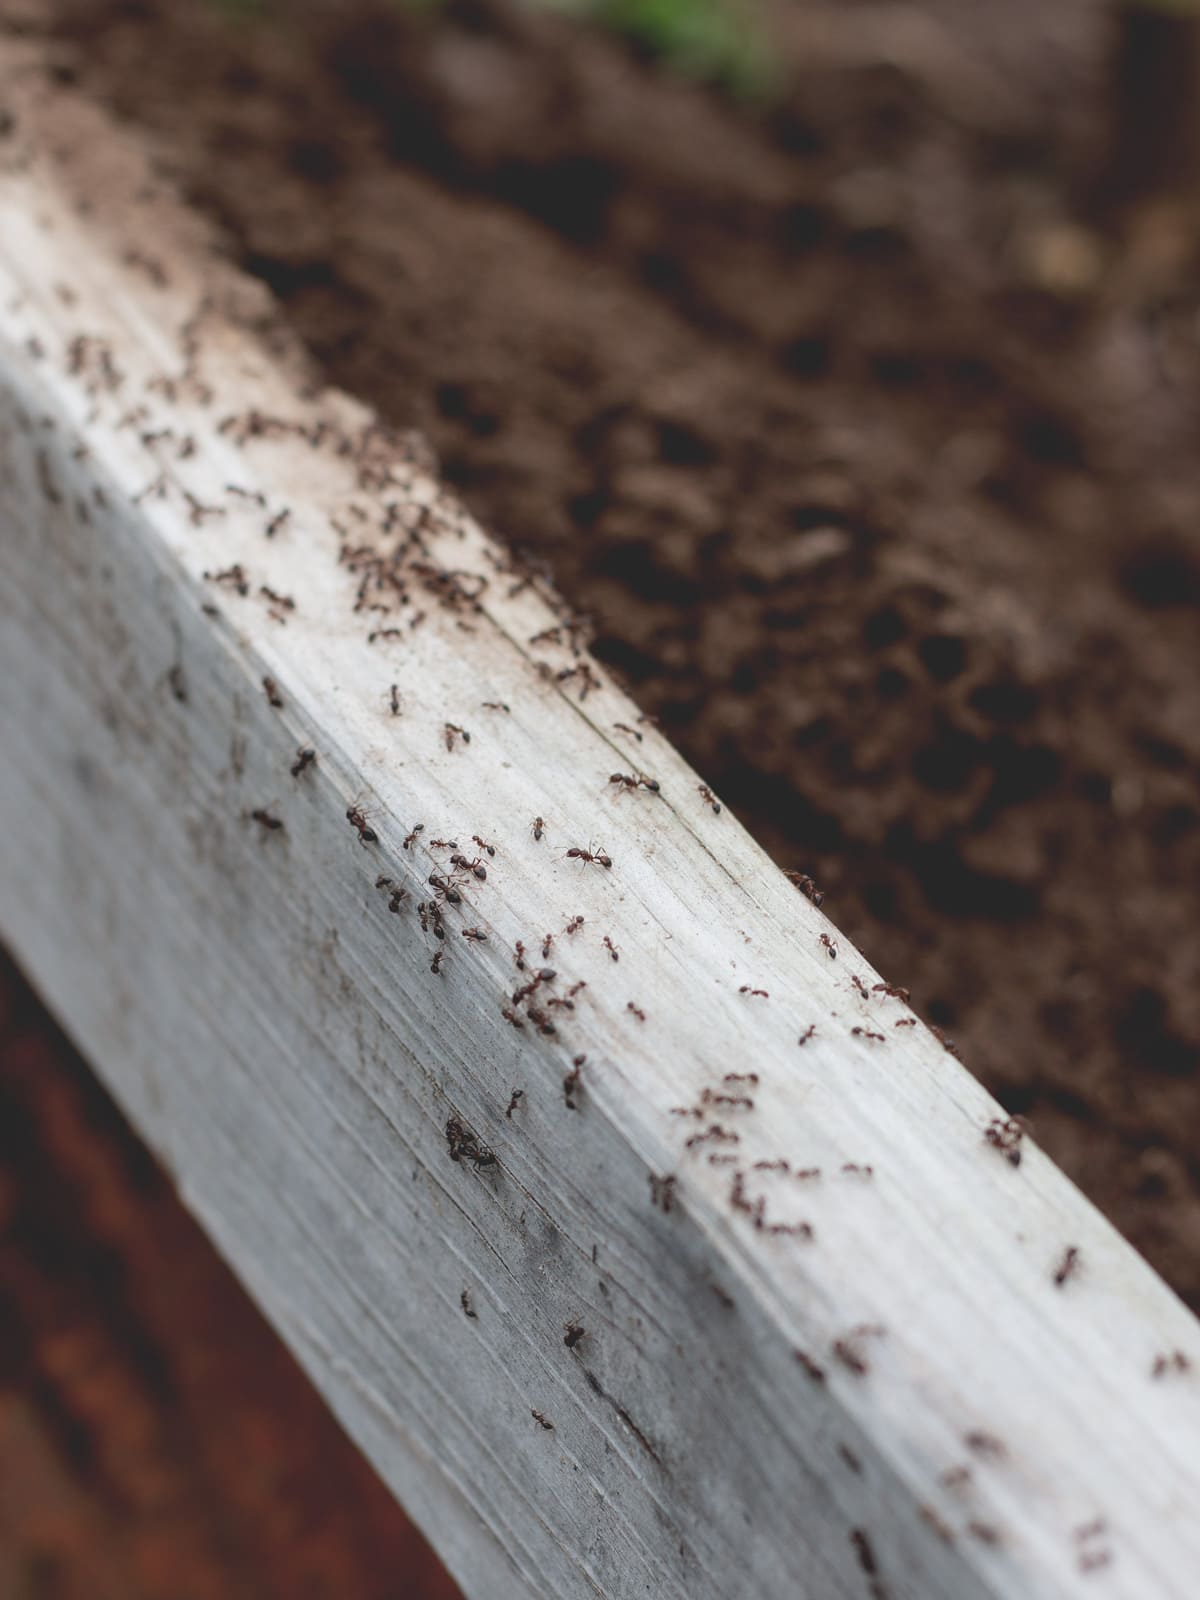 Fire Ants in a Raised Garden Bed